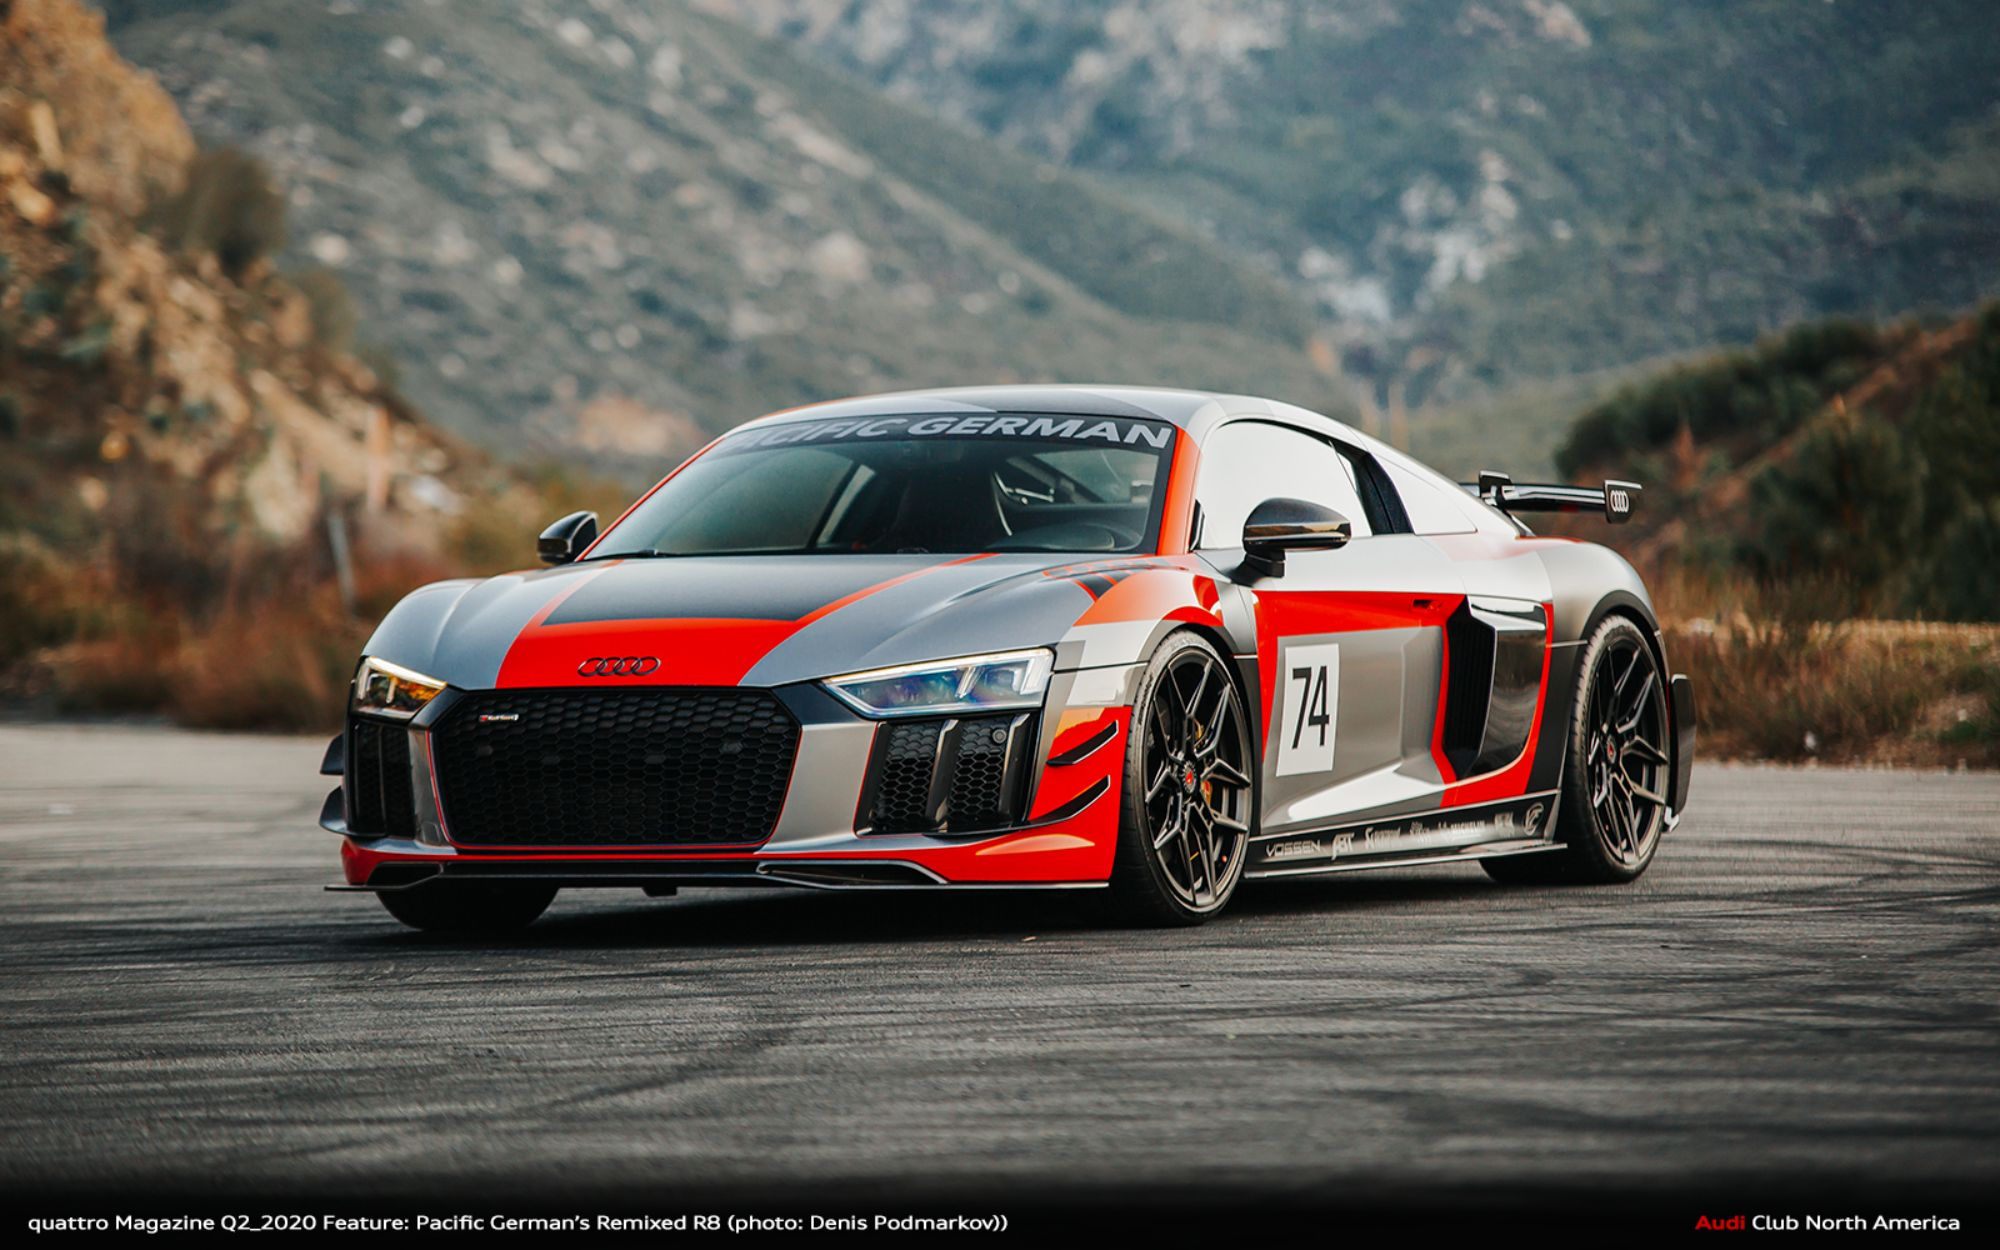 quattro Magazine Q2_2020 Feature: Pacific German's Remixed R8